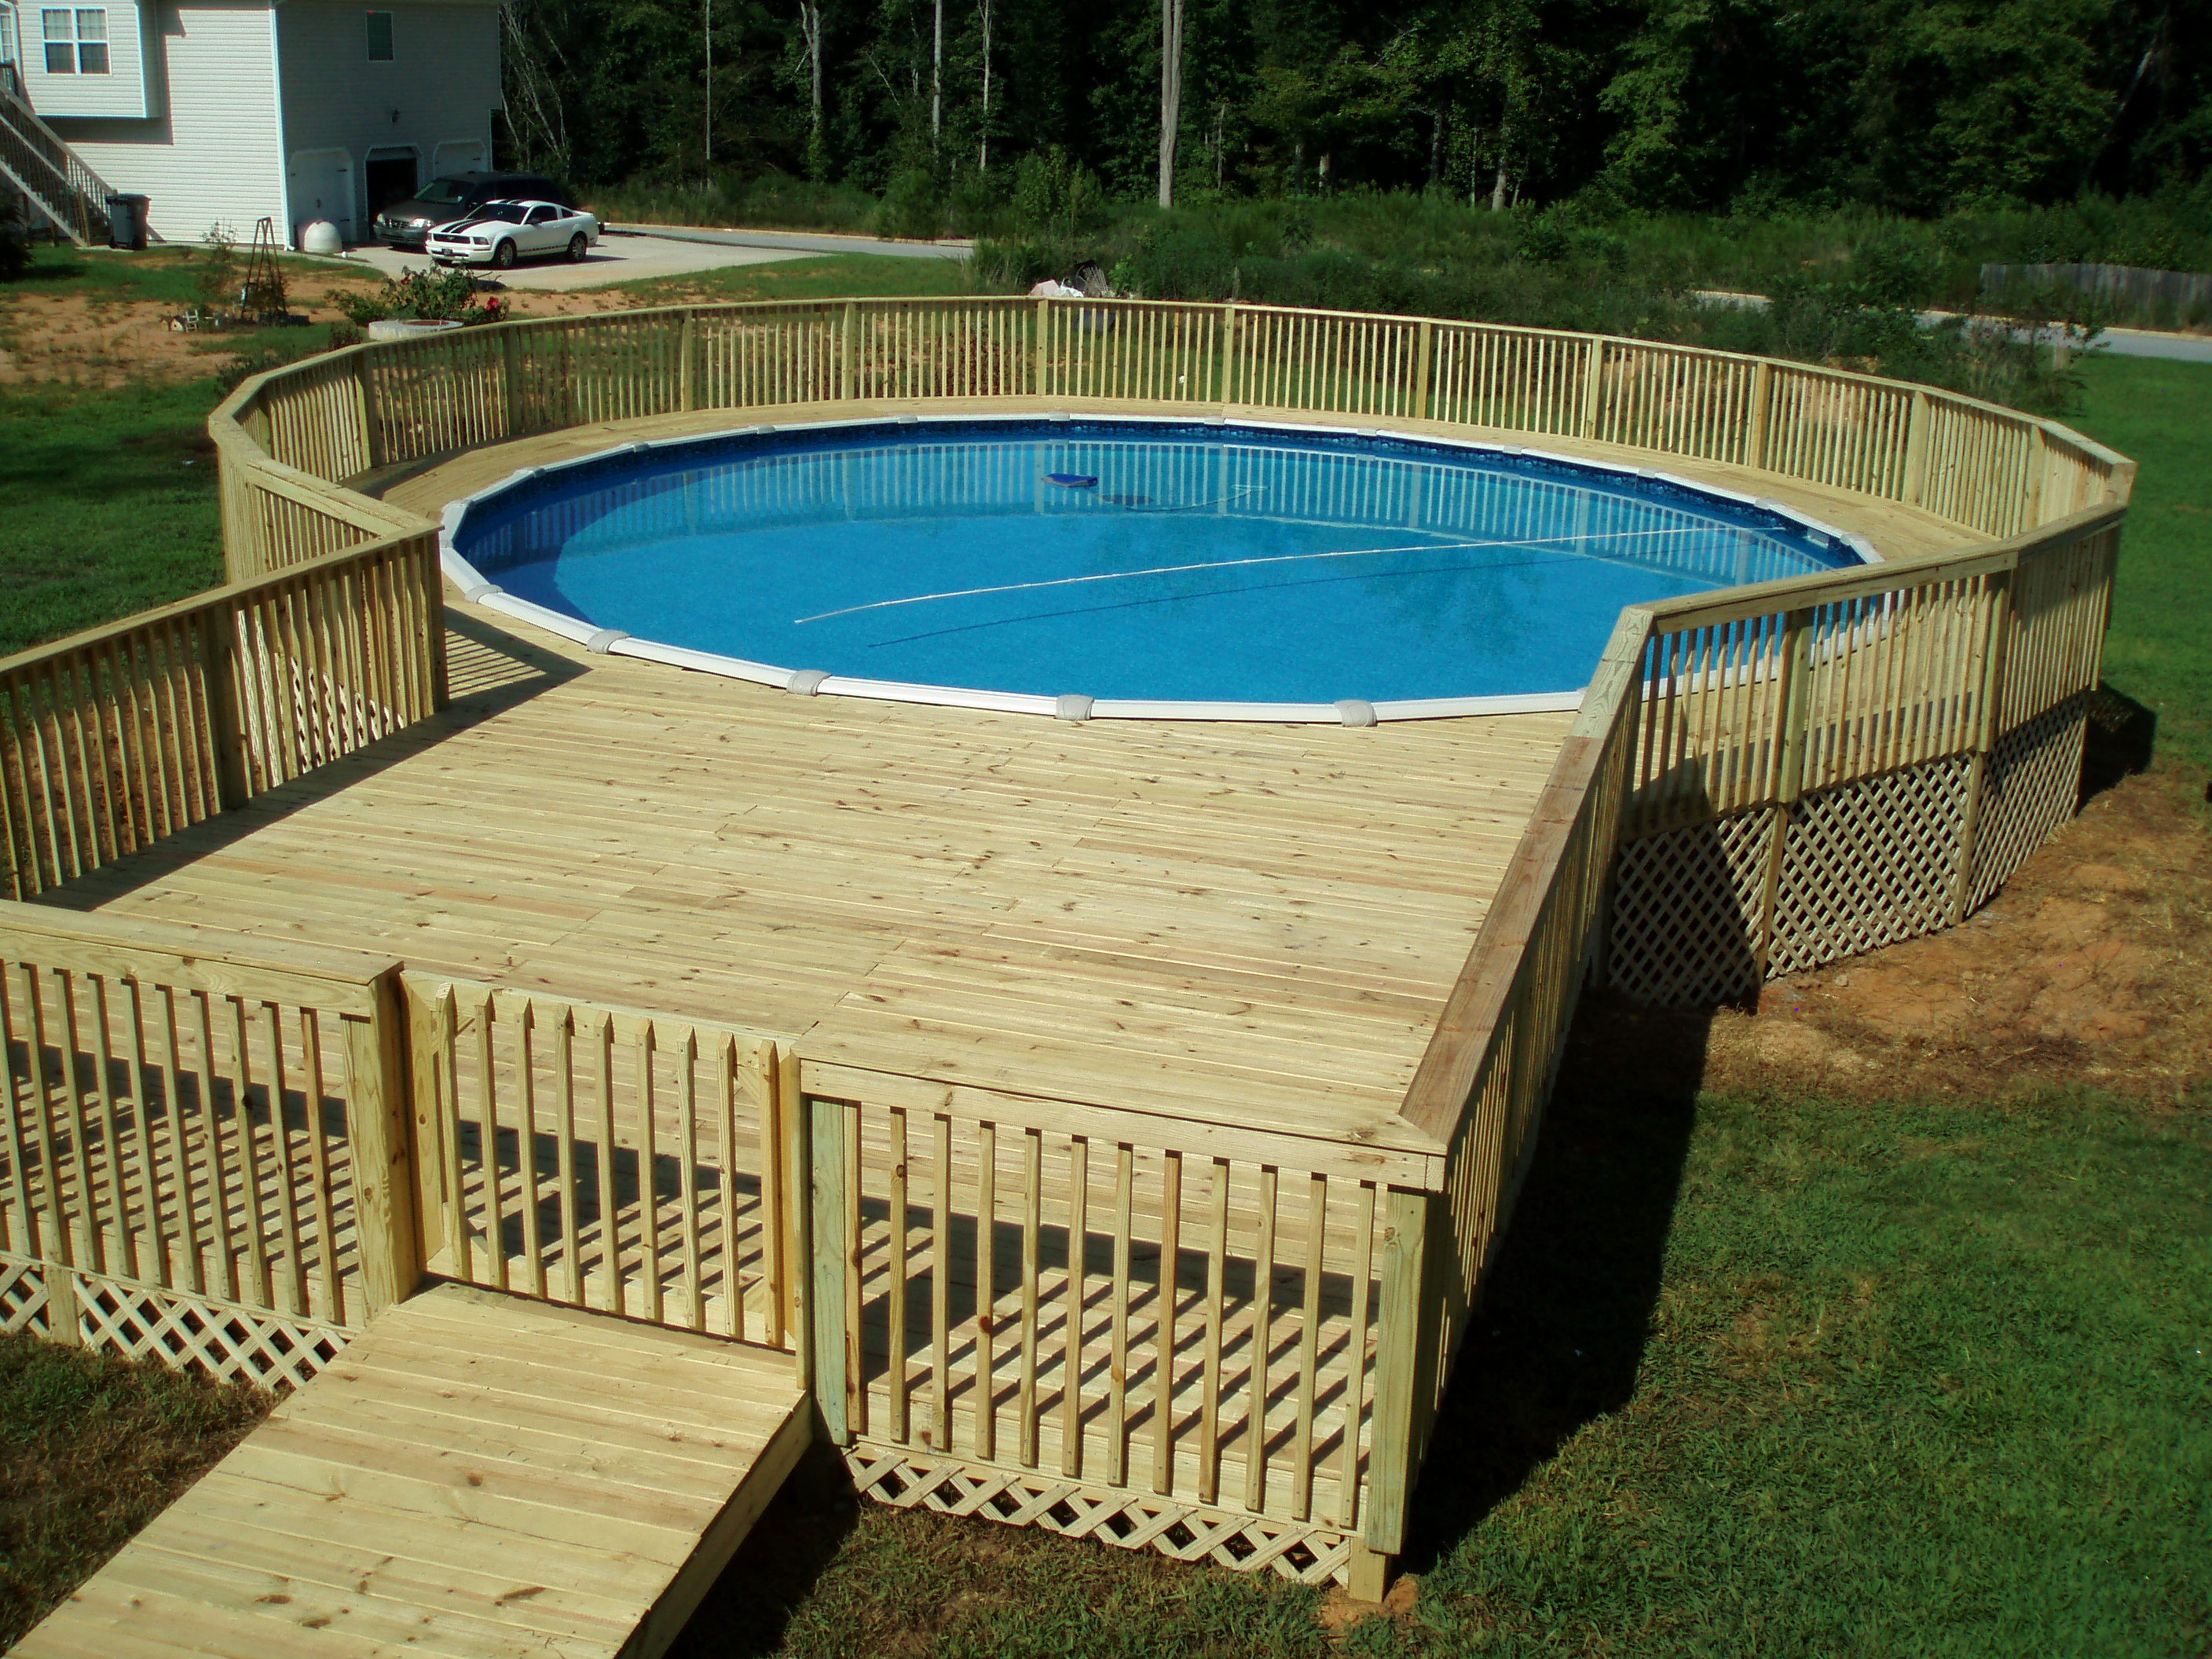 Best ideas about Pool Decks For Above Ground Pools . Save or Pin Simple Ground Pool Deck Ideas Now.